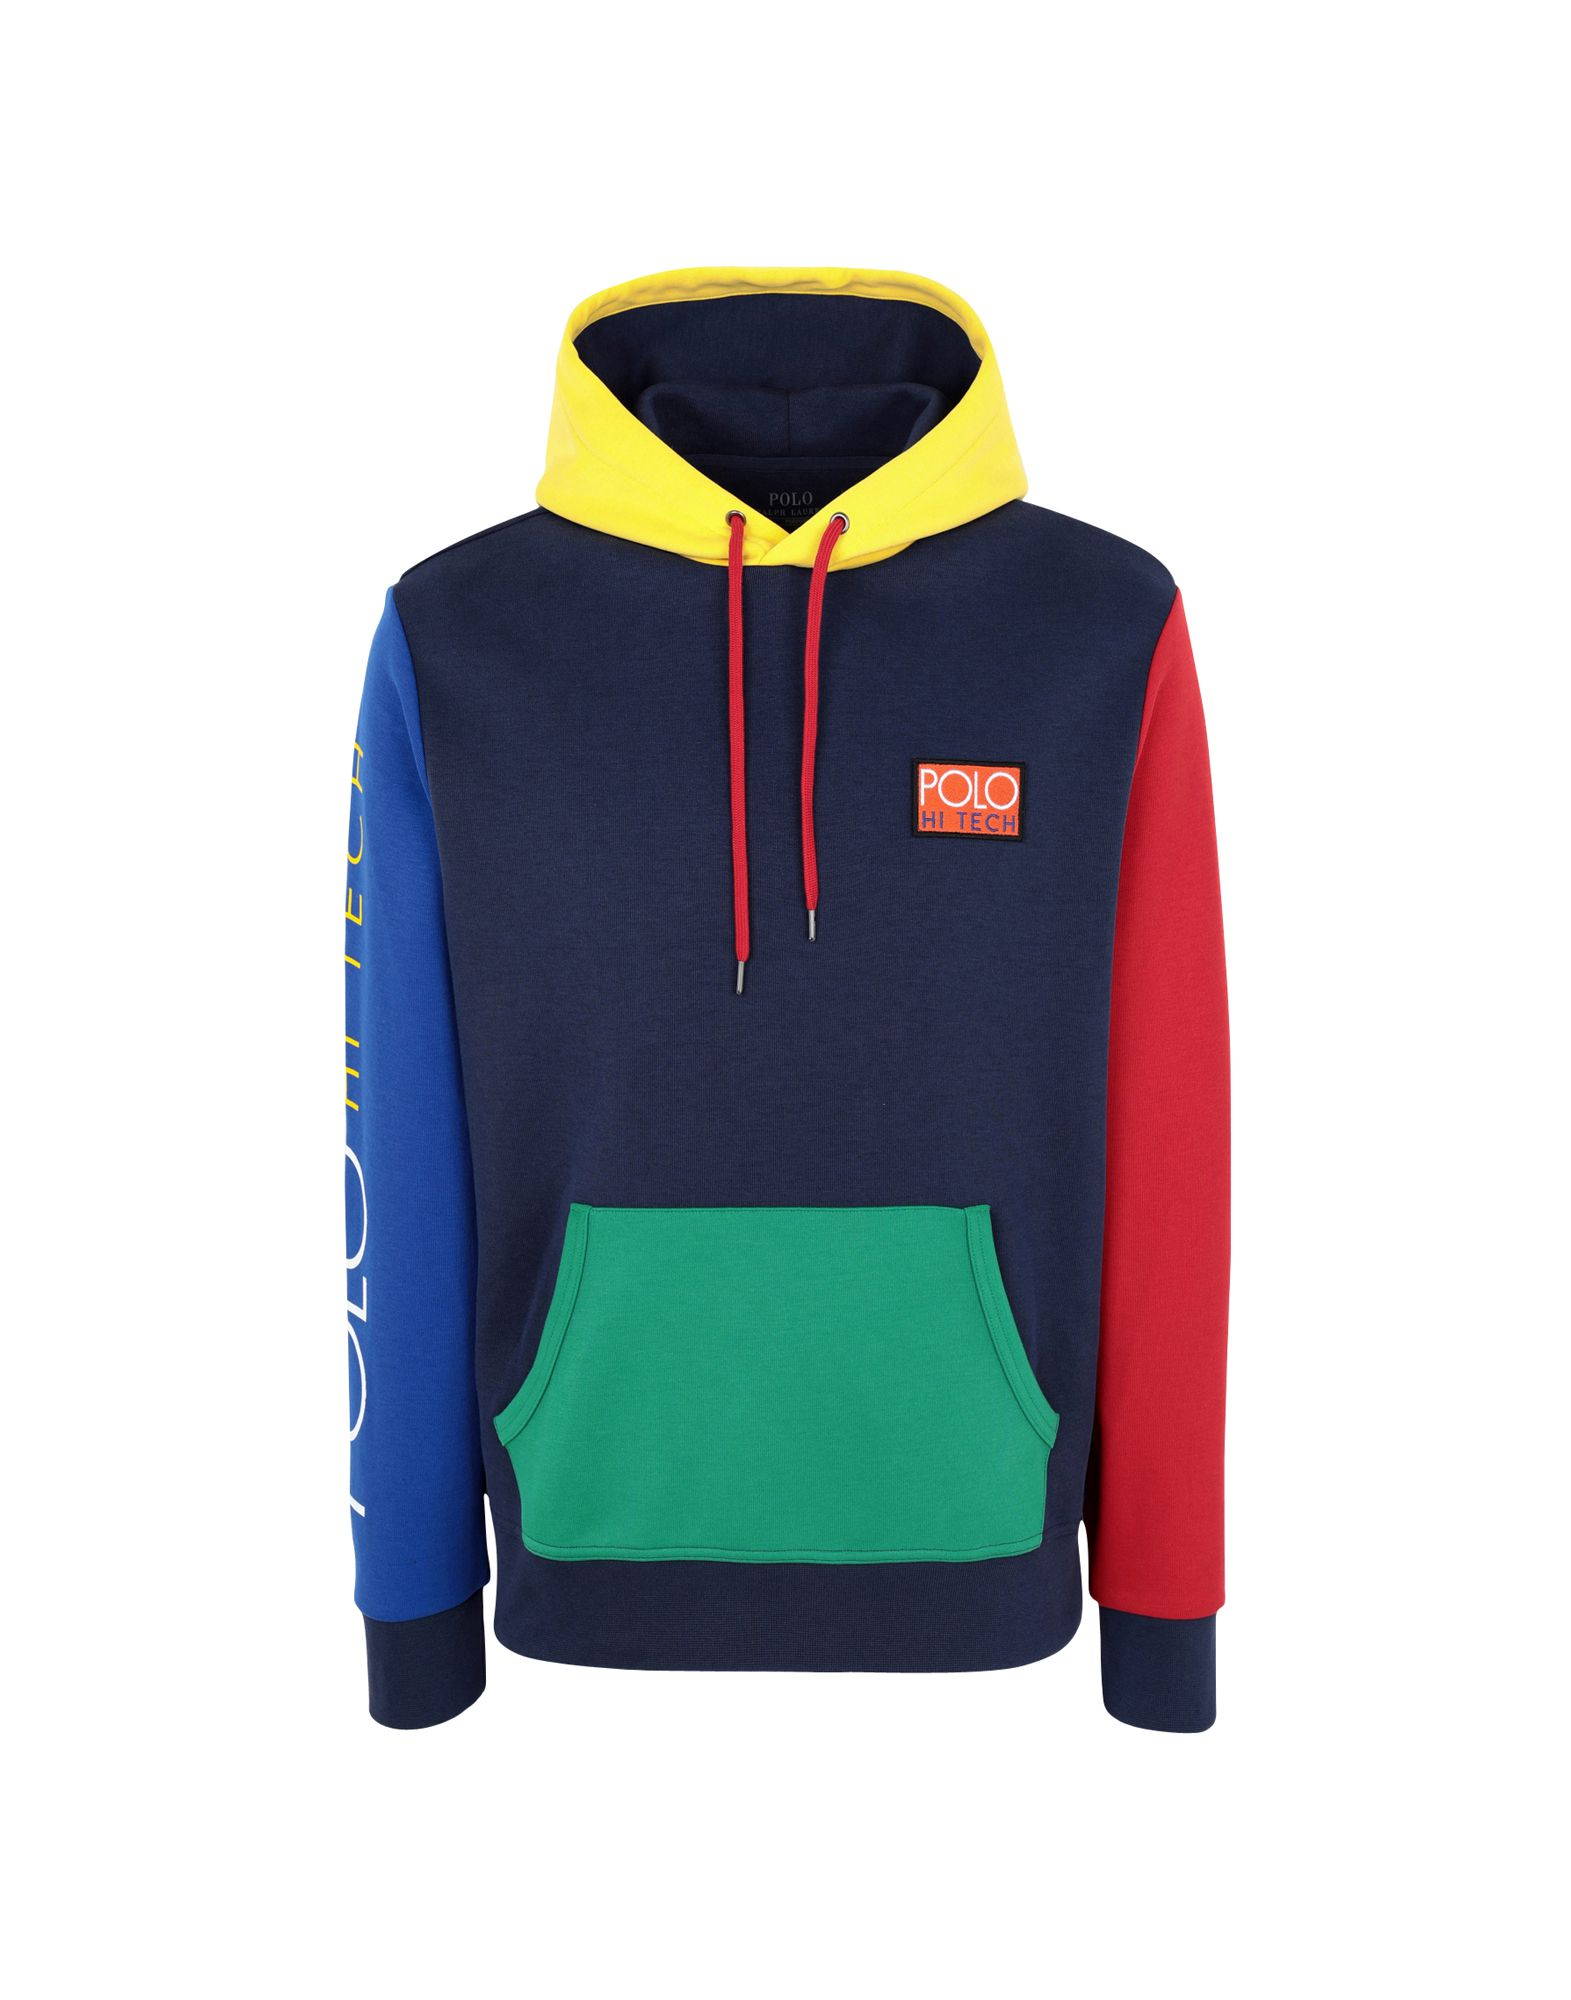 20ffdee51c76b Polo Ralph Lauren Hi Tech Color-Blocked Hoodie - Hooded Track Jacket ...